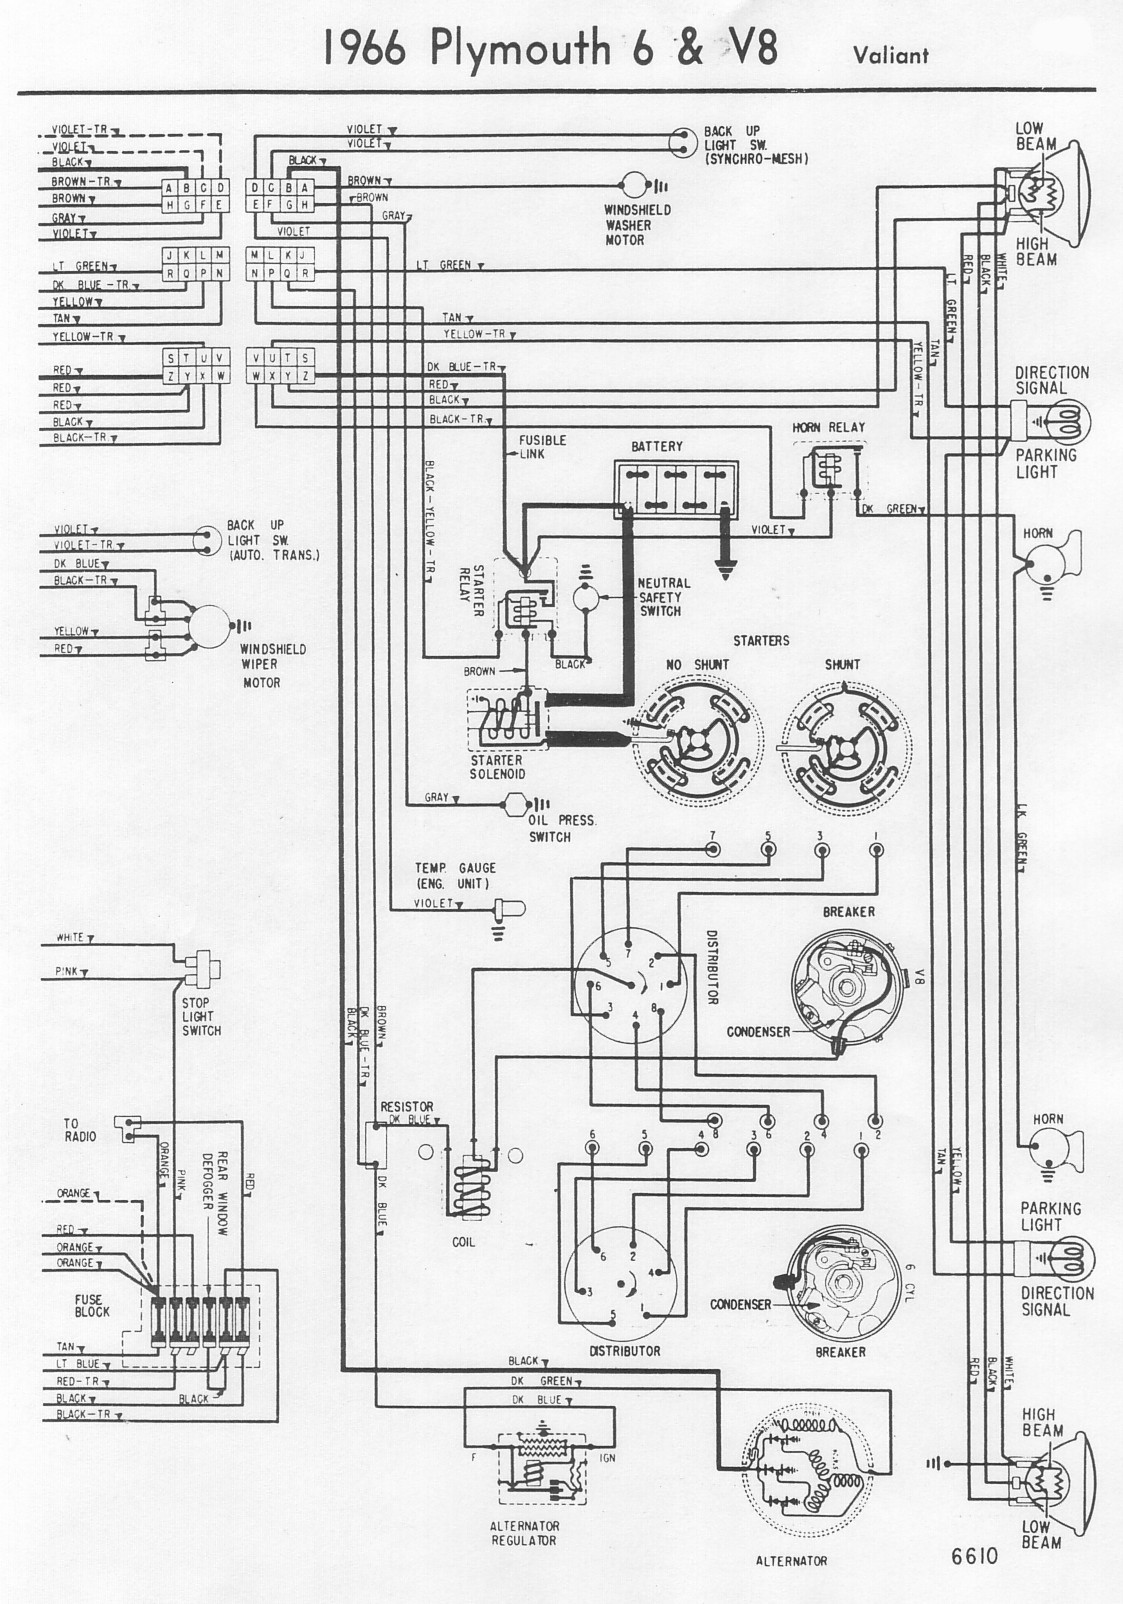 wiring diagram for 1966 plymouth barracuda group  1966 plymouth barracuda wiring diagram #10